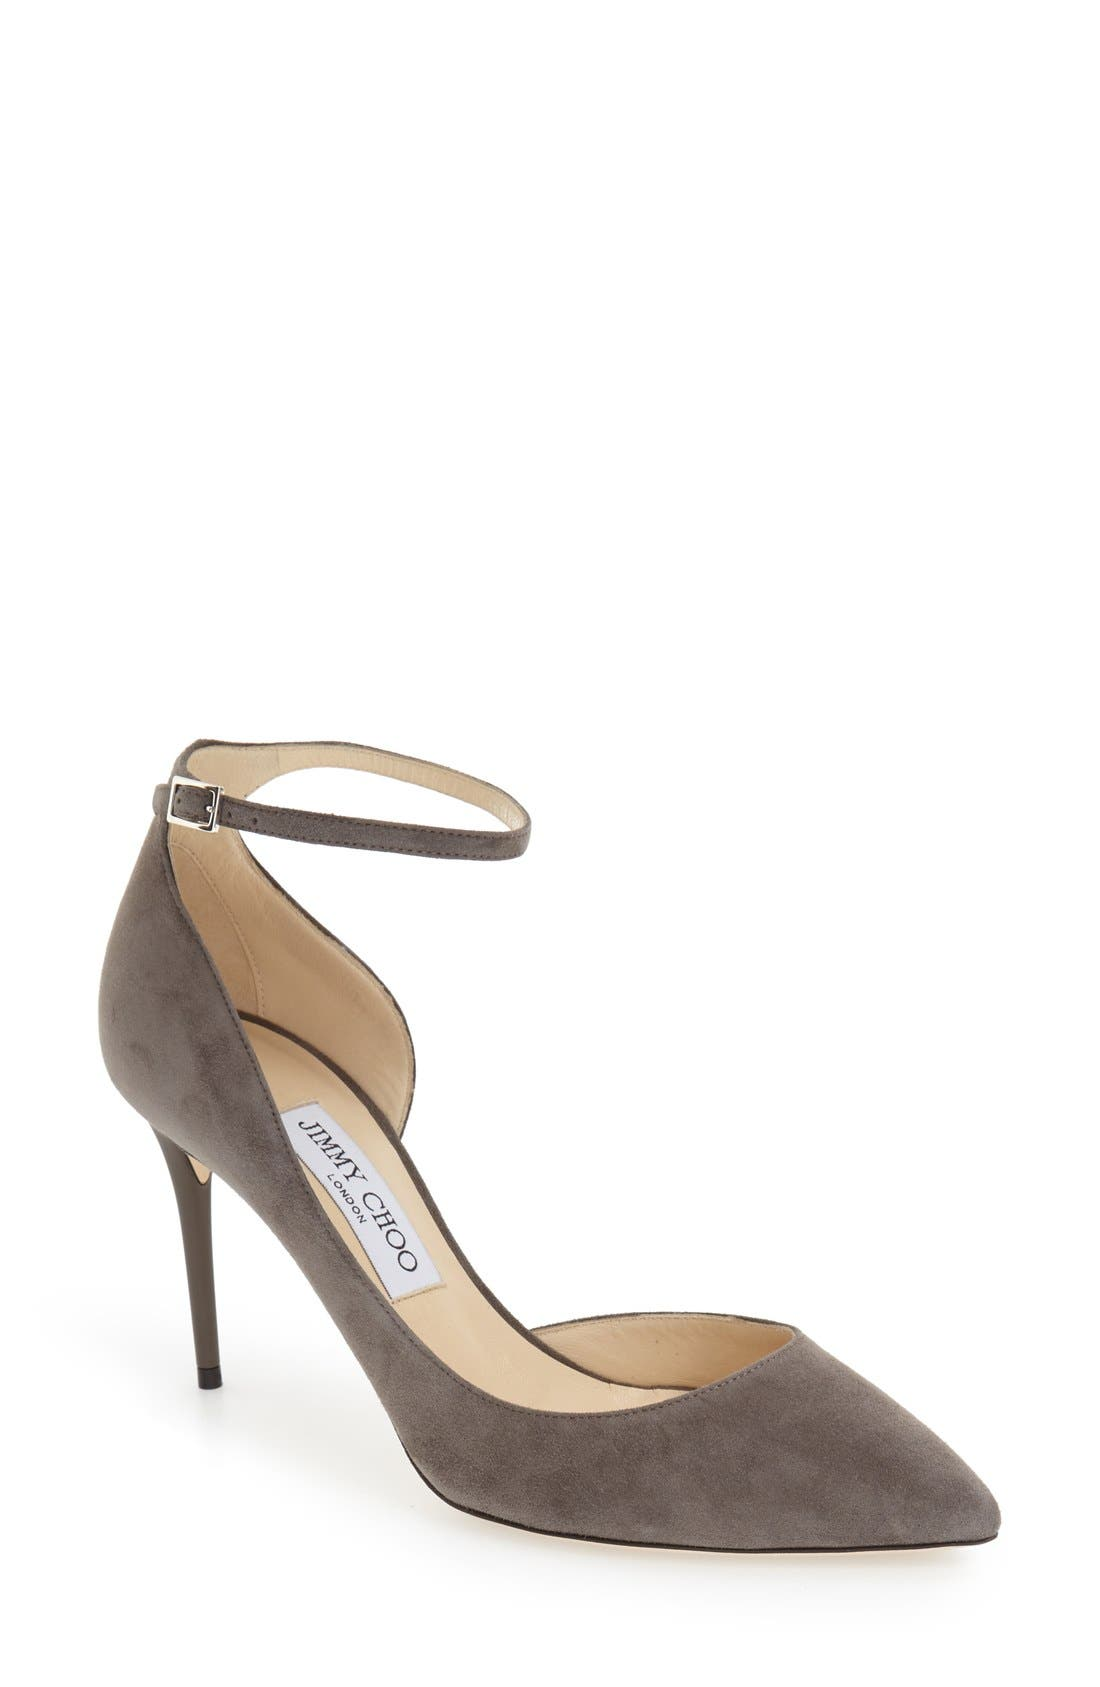 Alternate Image 1 Selected - Jimmy Choo 'Lucy' Half d'Orsay Pointy Toe Pump (Women)